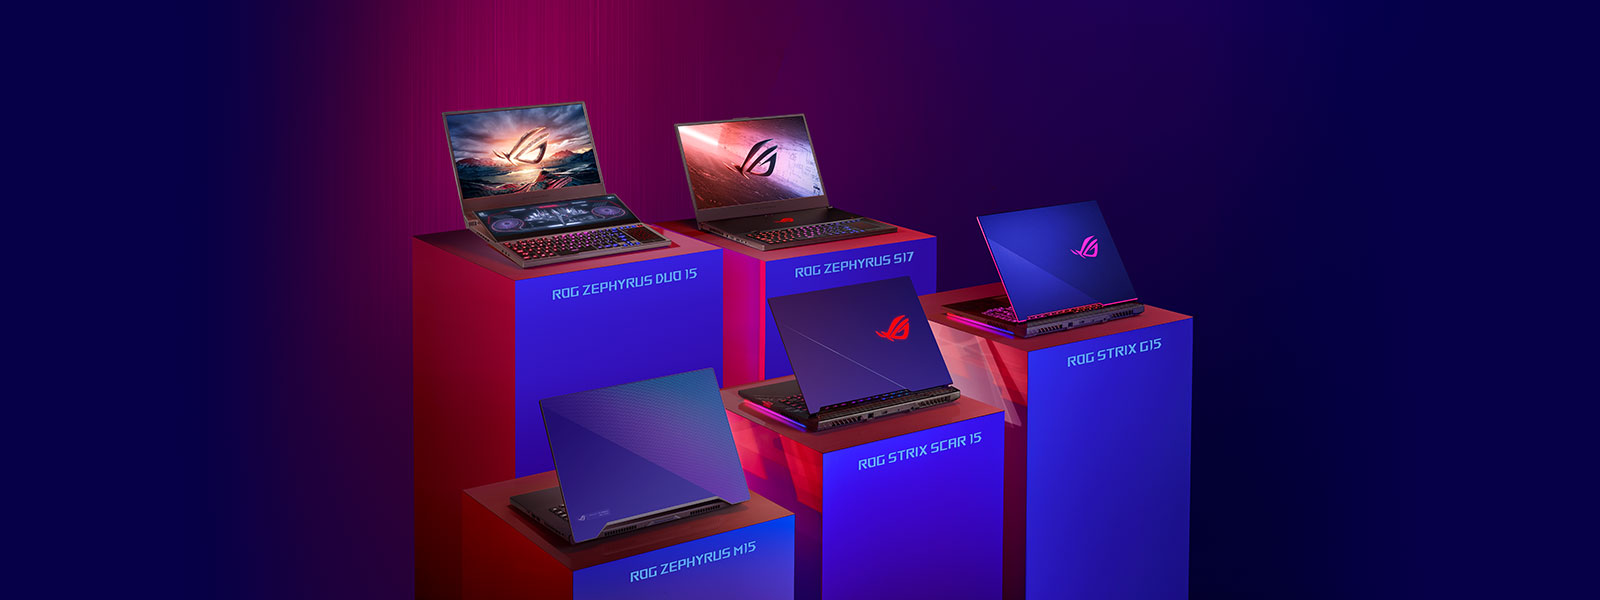 Collection of ASUS Republic of Gamers laptops.